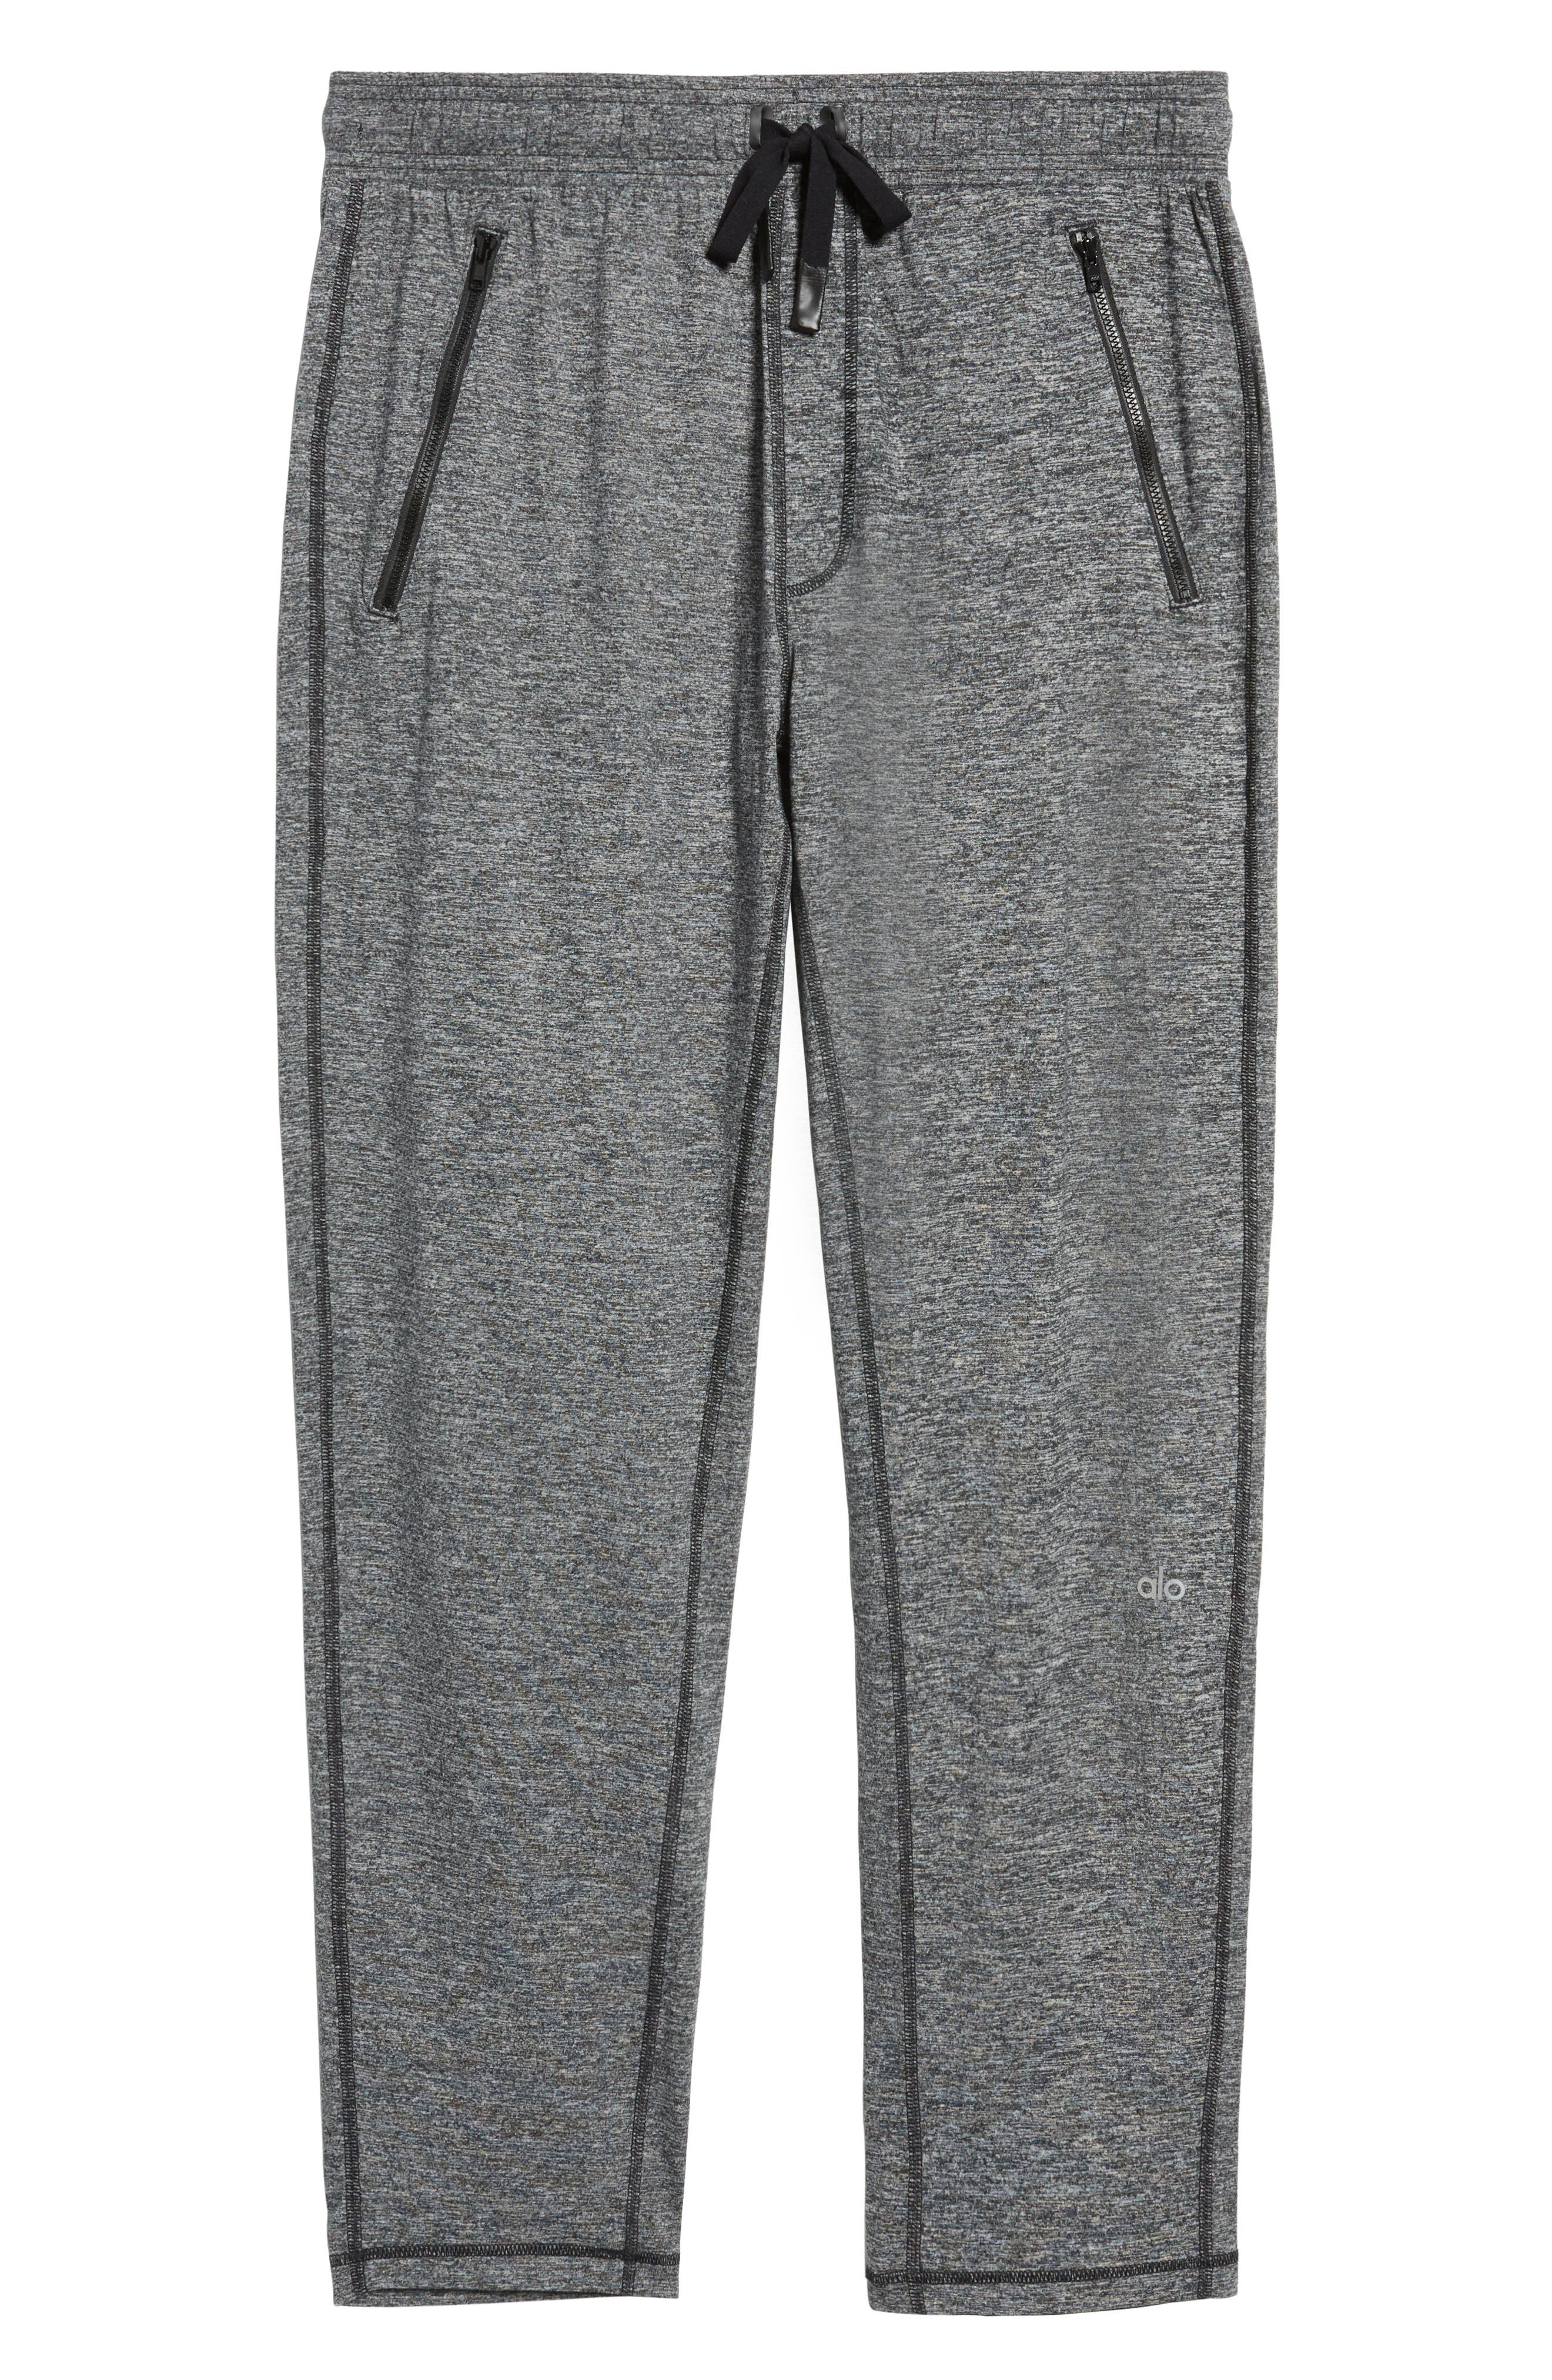 Renew Relaxed Lounge Pants,                             Alternate thumbnail 6, color,                             Grey Marl